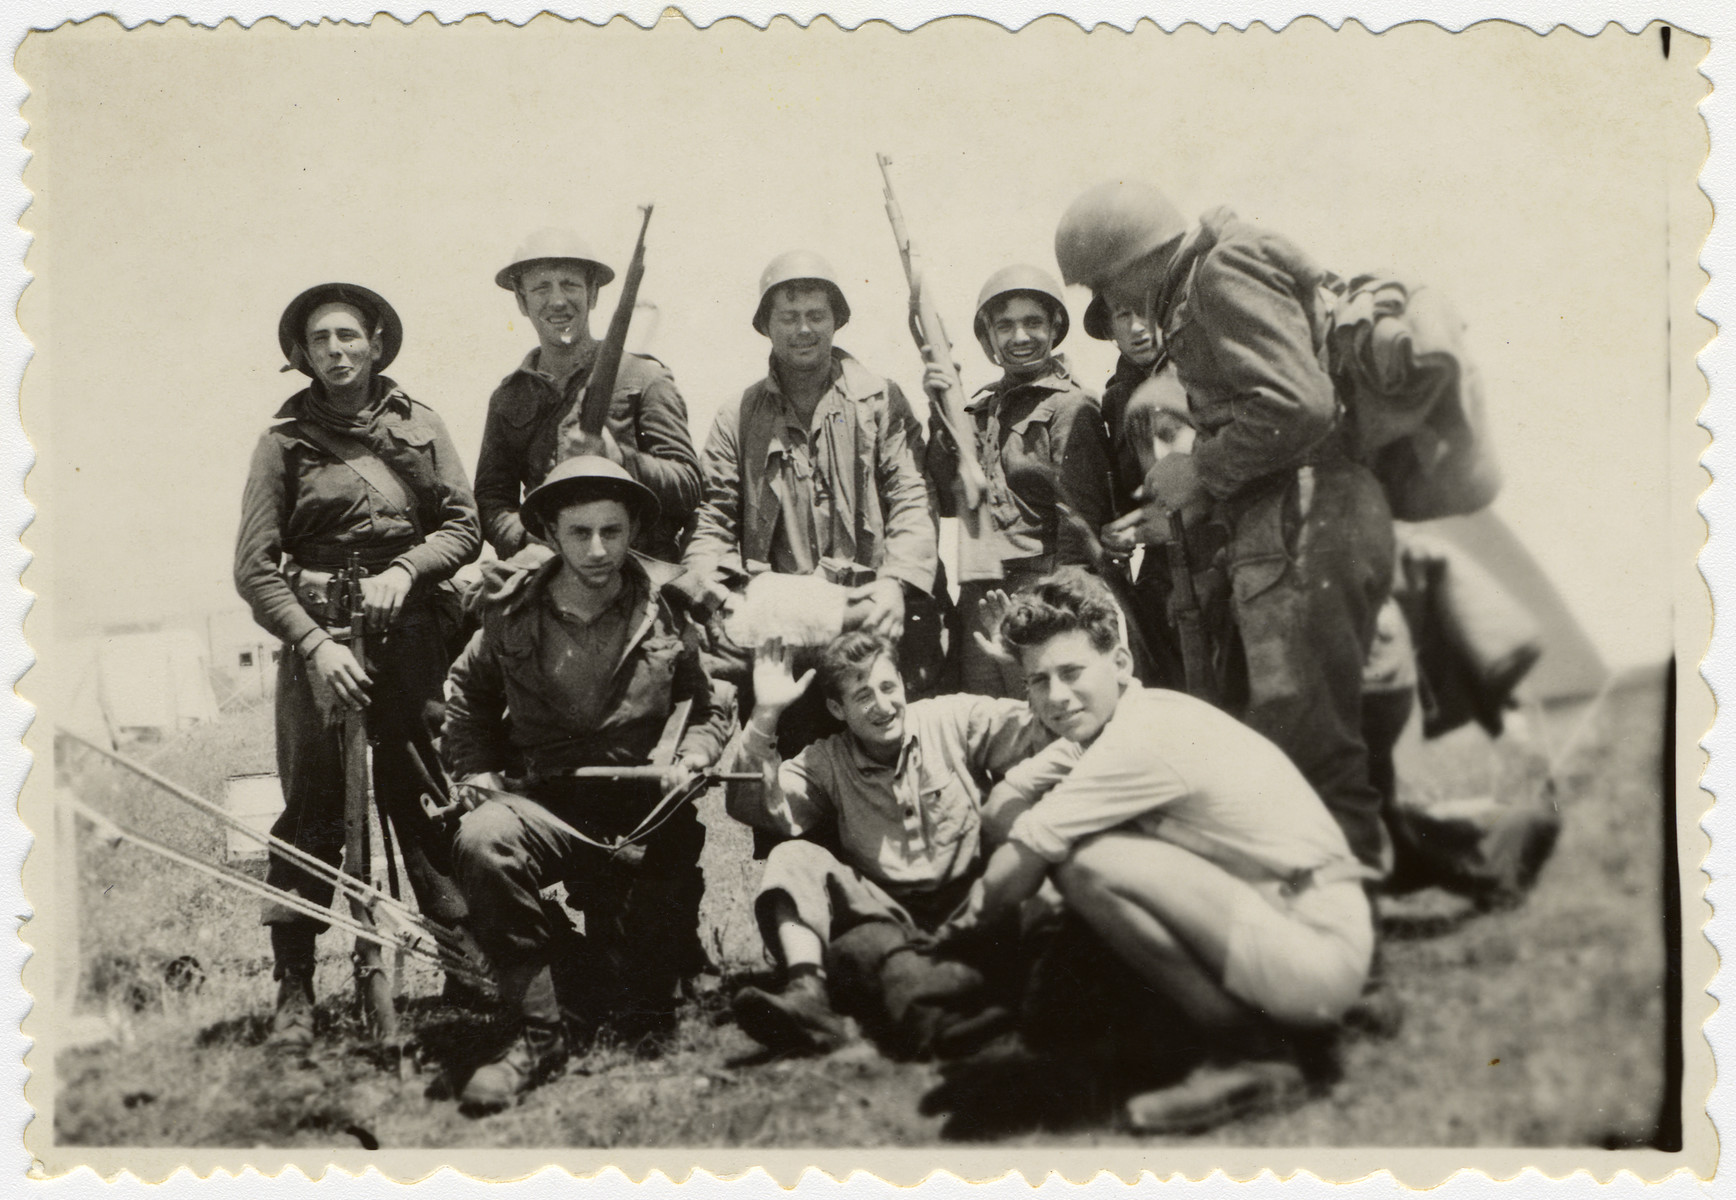 Group portrait of a Palmach unit in Israel.  Pictured squatting on the far right is Daniel Barnea (formerly Werner Heilbronner).